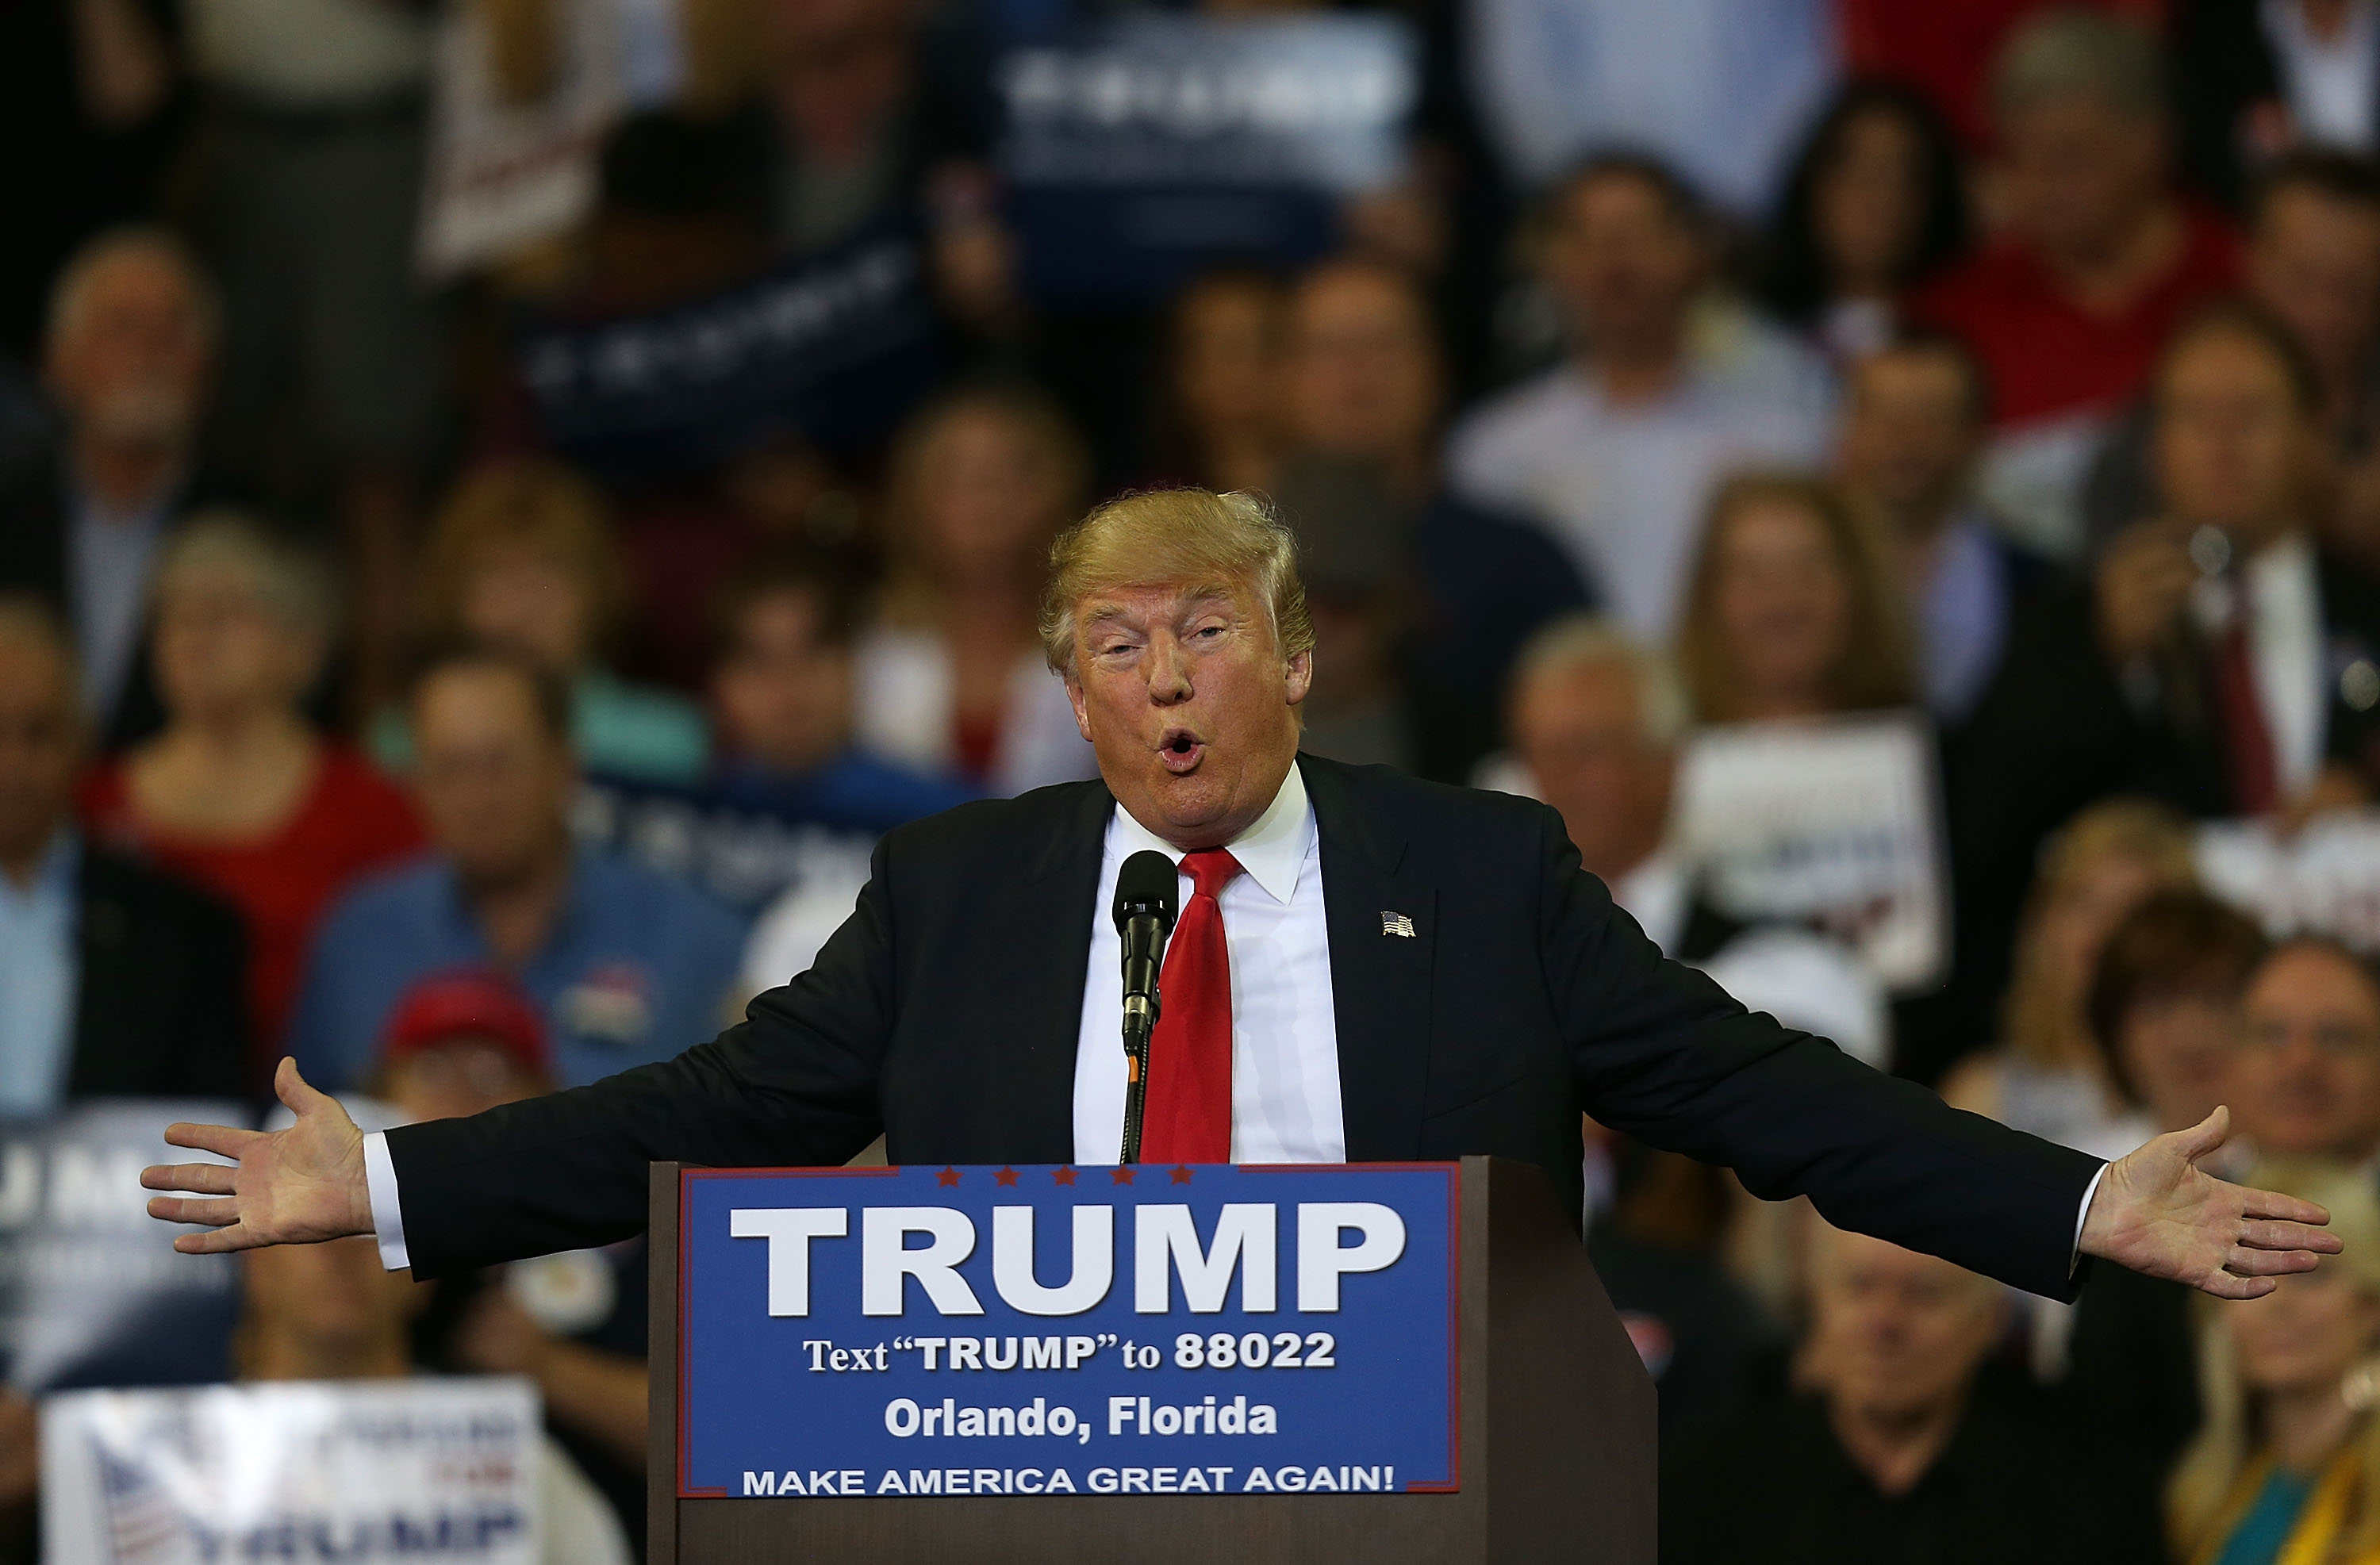 Republican front runner Donald Trump speaks at the University of Central Florida. Trump has been defending his defunct Trump University, saying it has an A rating from the Better Business Bureau. (Getty Images)